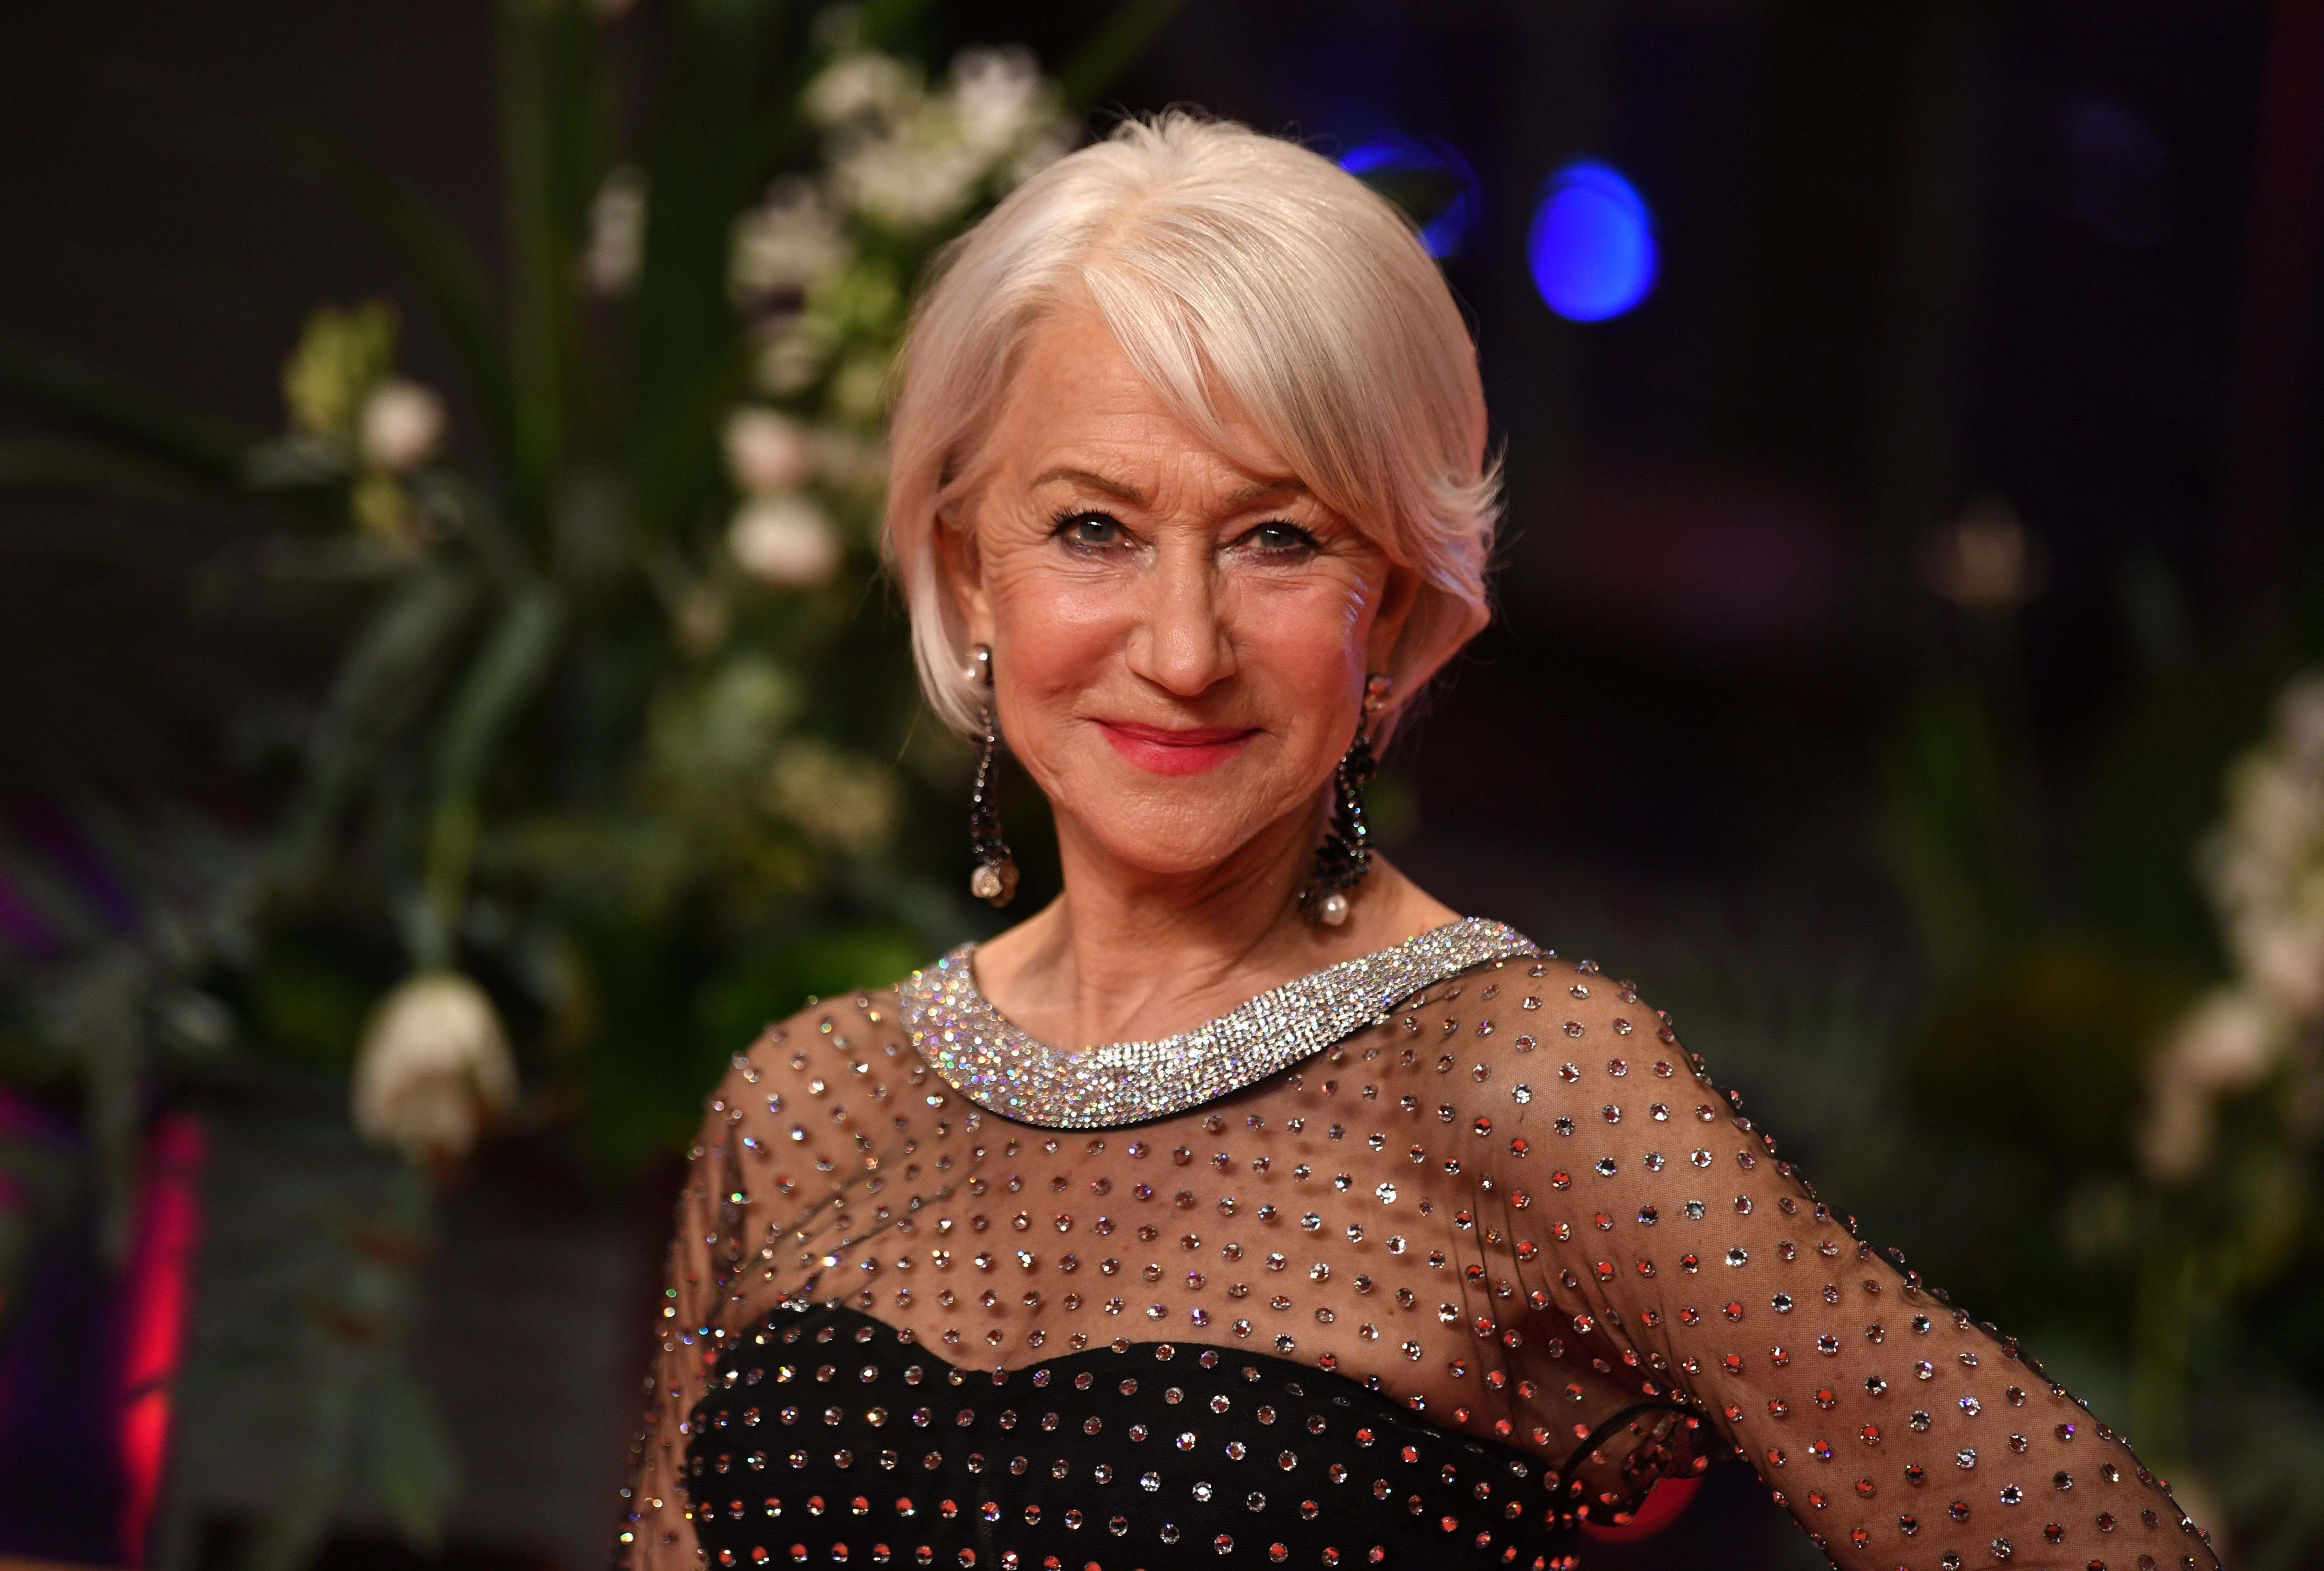 Helen Mirren at the 70th Berlinale International Film Festival on February 27, 2020, in Germany.   Photo: Getty Images